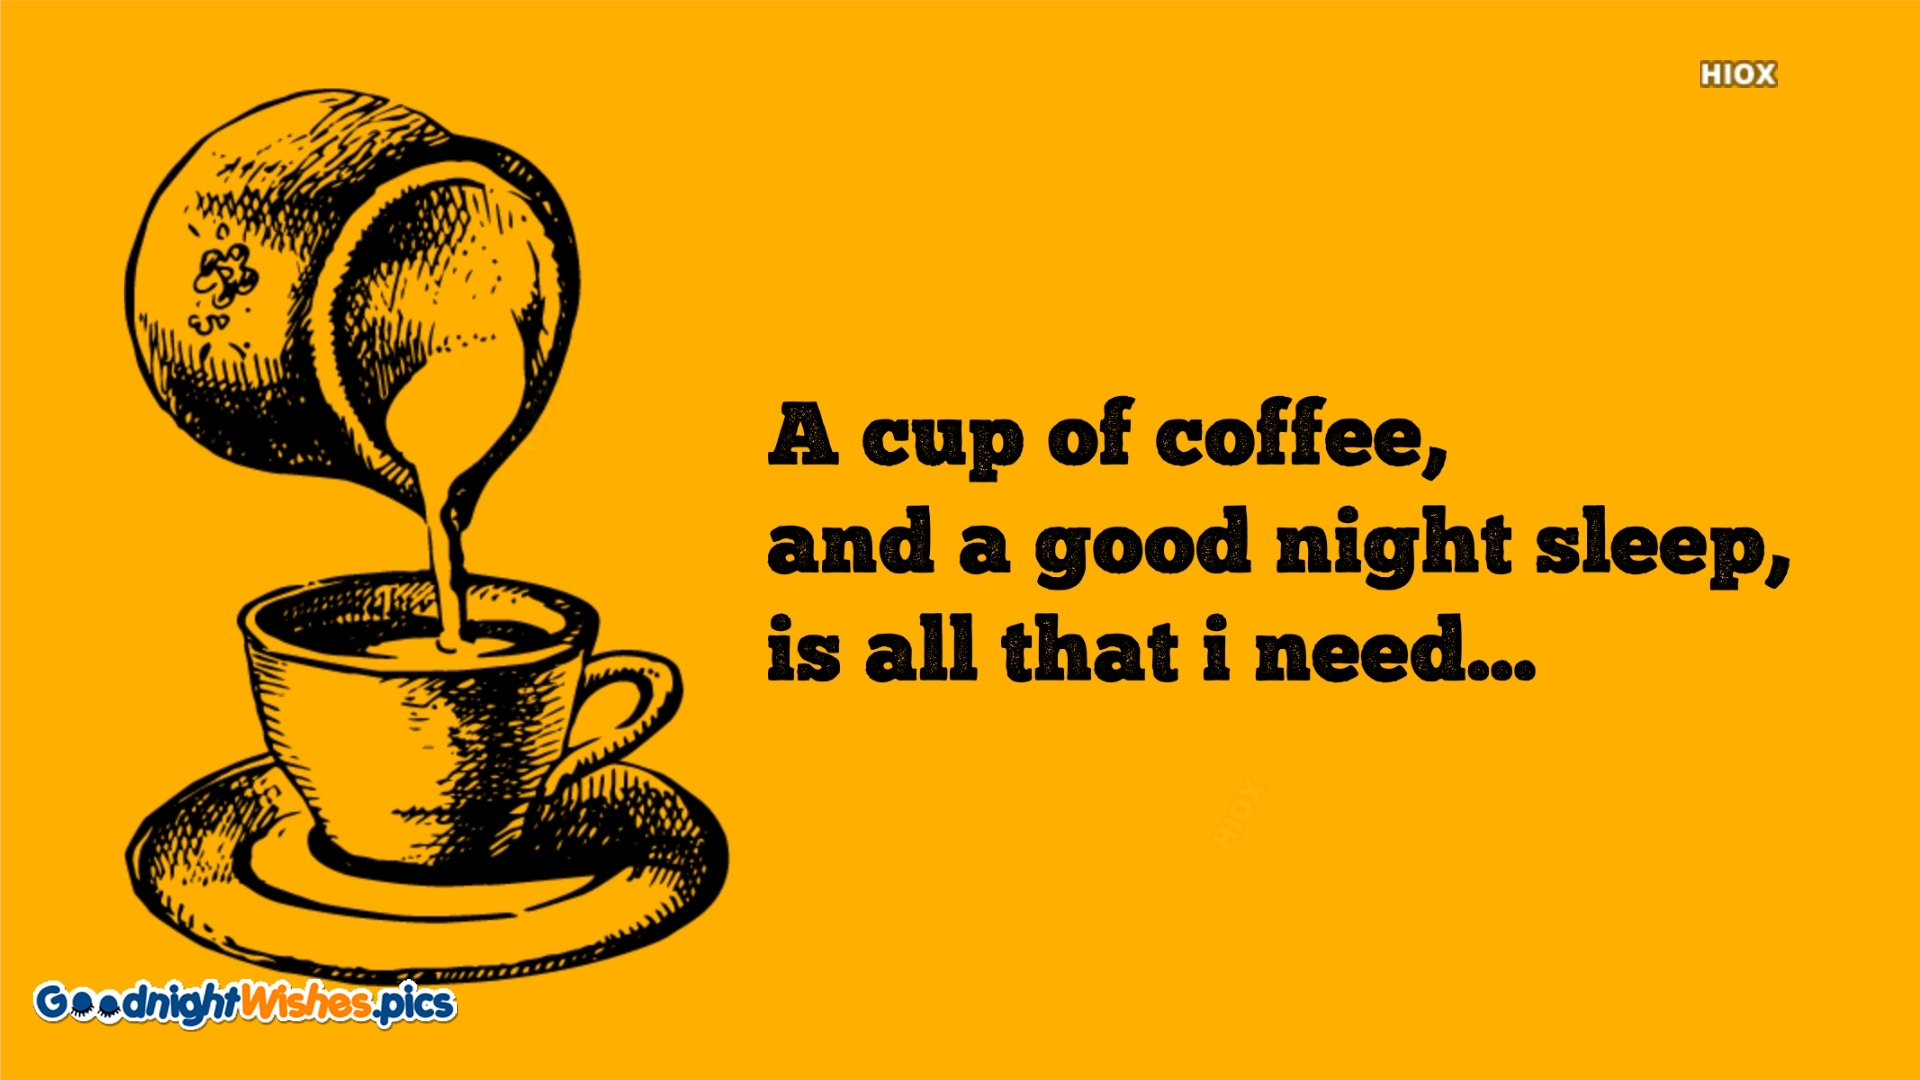 Good Night Wishes With Coffee